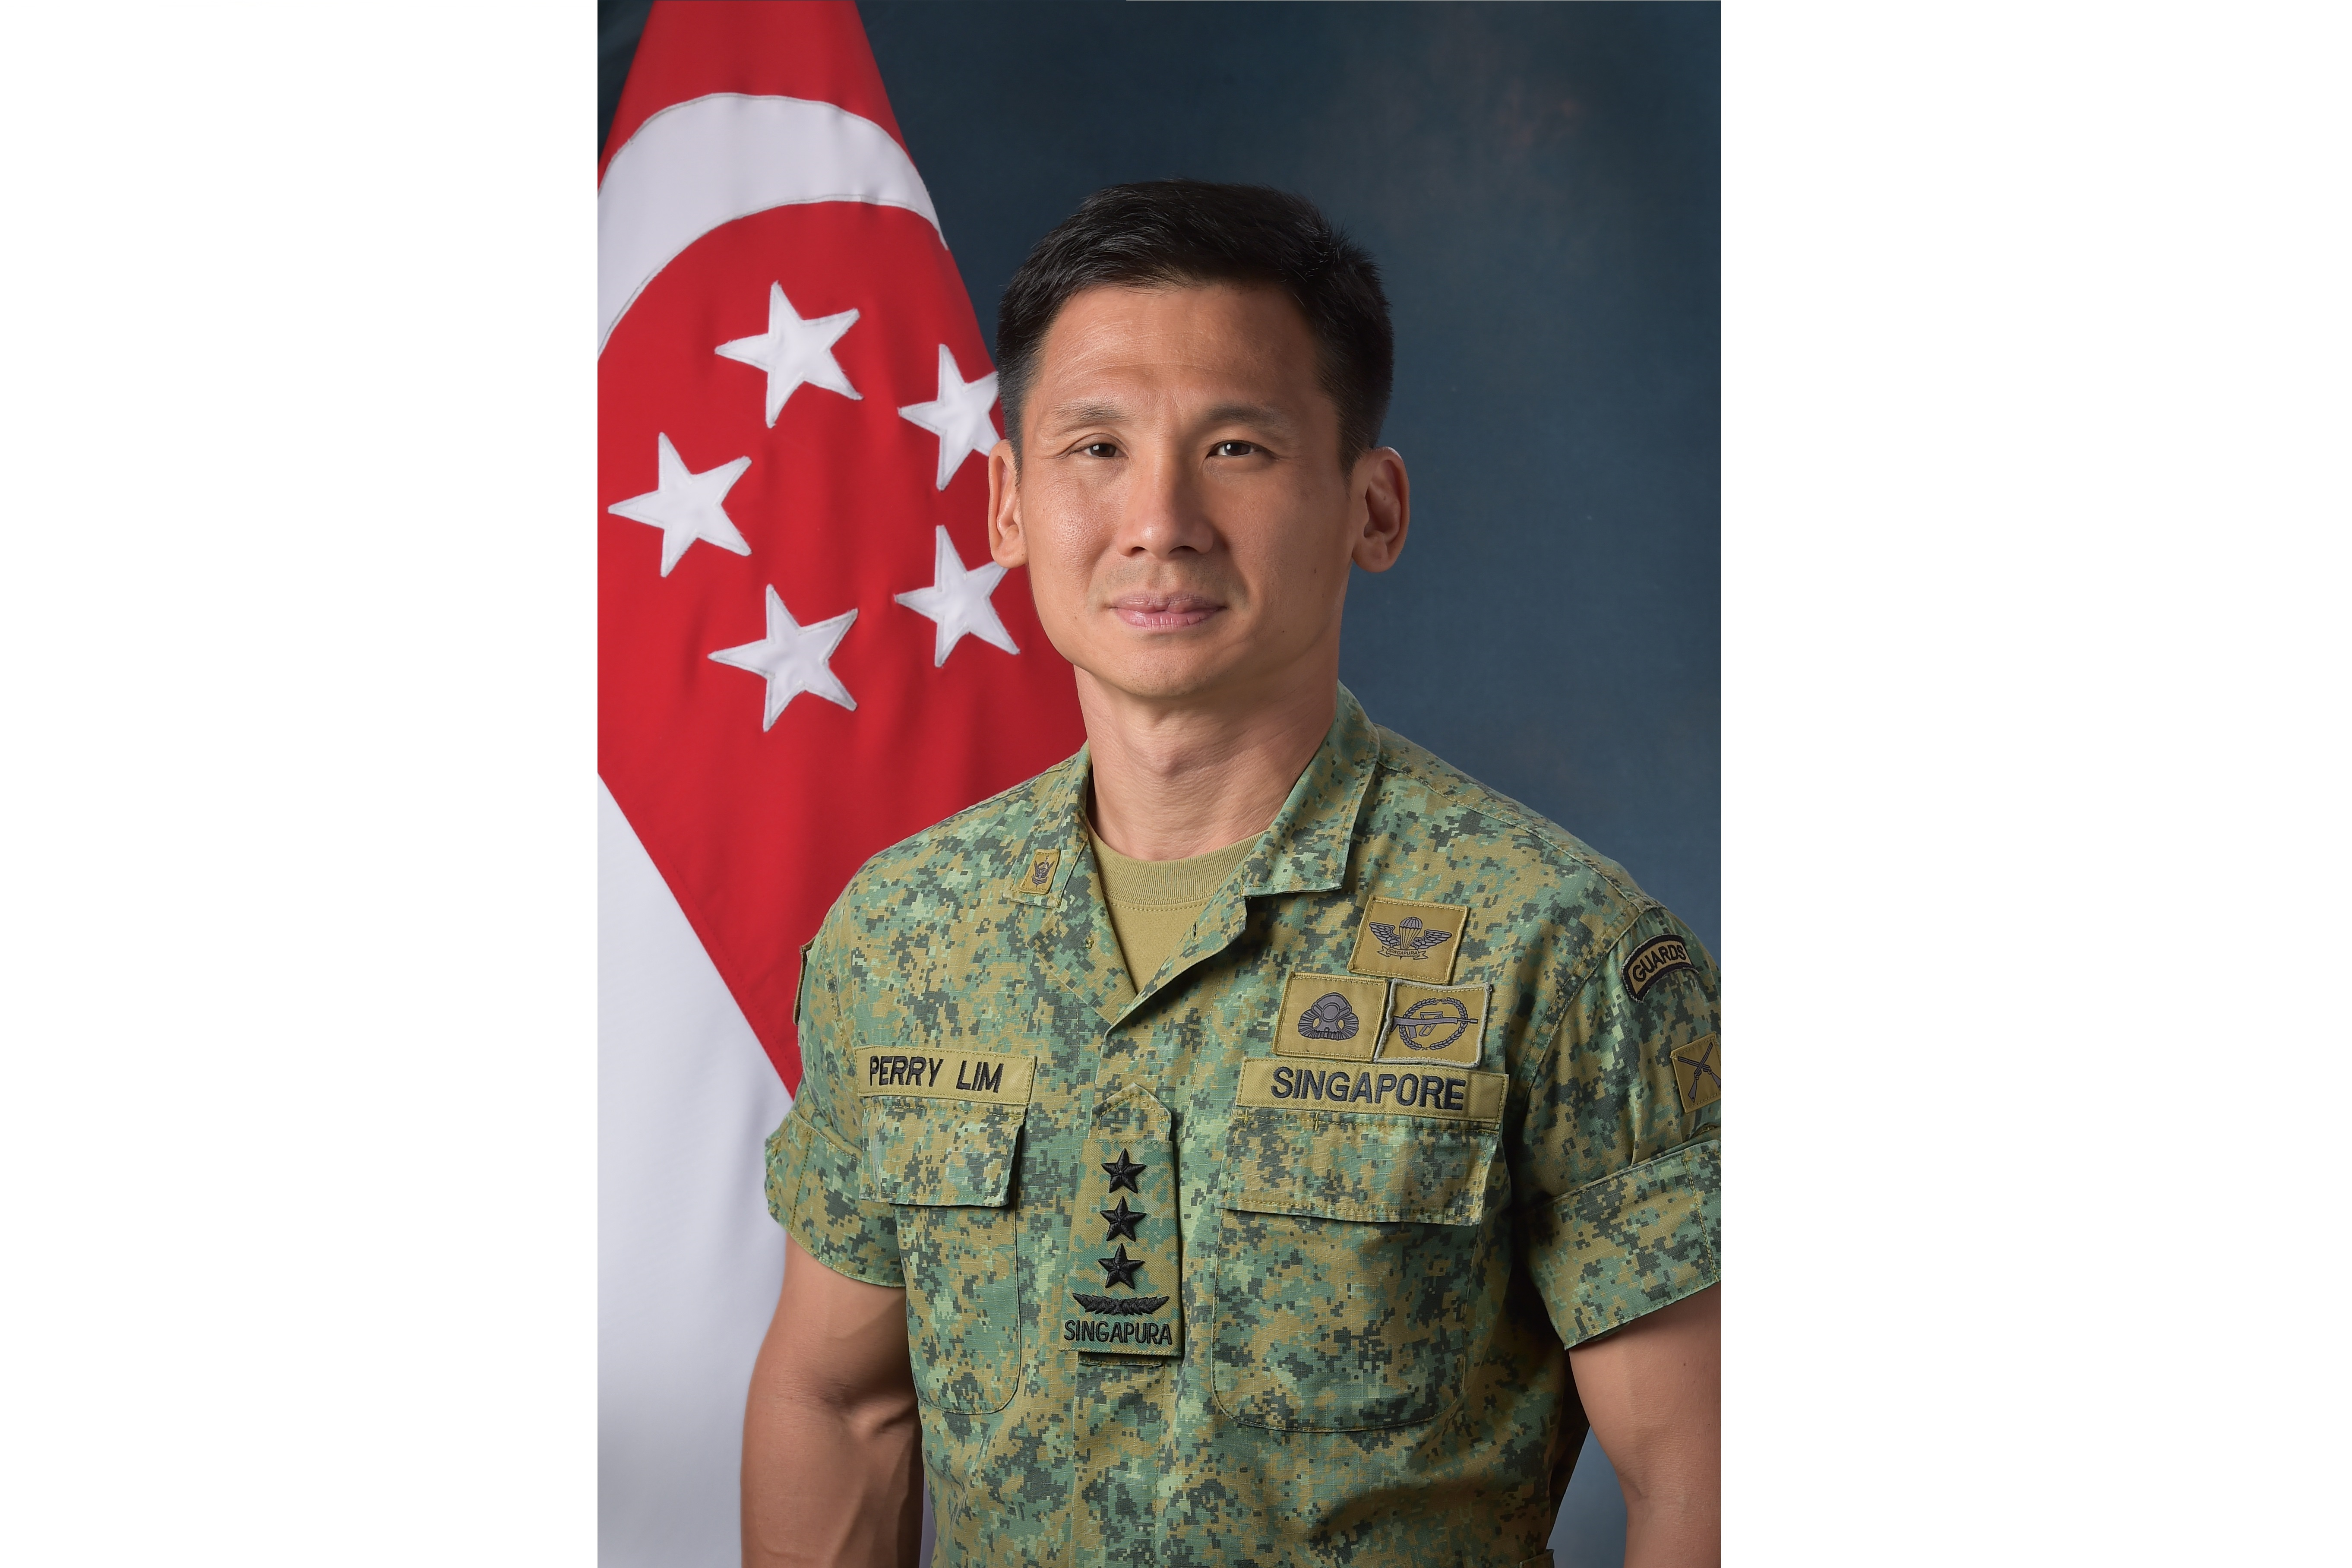 Lieutenant-General (LG) Perry Lim Cheng Yeow, the outgoing Chief of Defence Force, has served the SAF with distinction for 28 years since 1990.